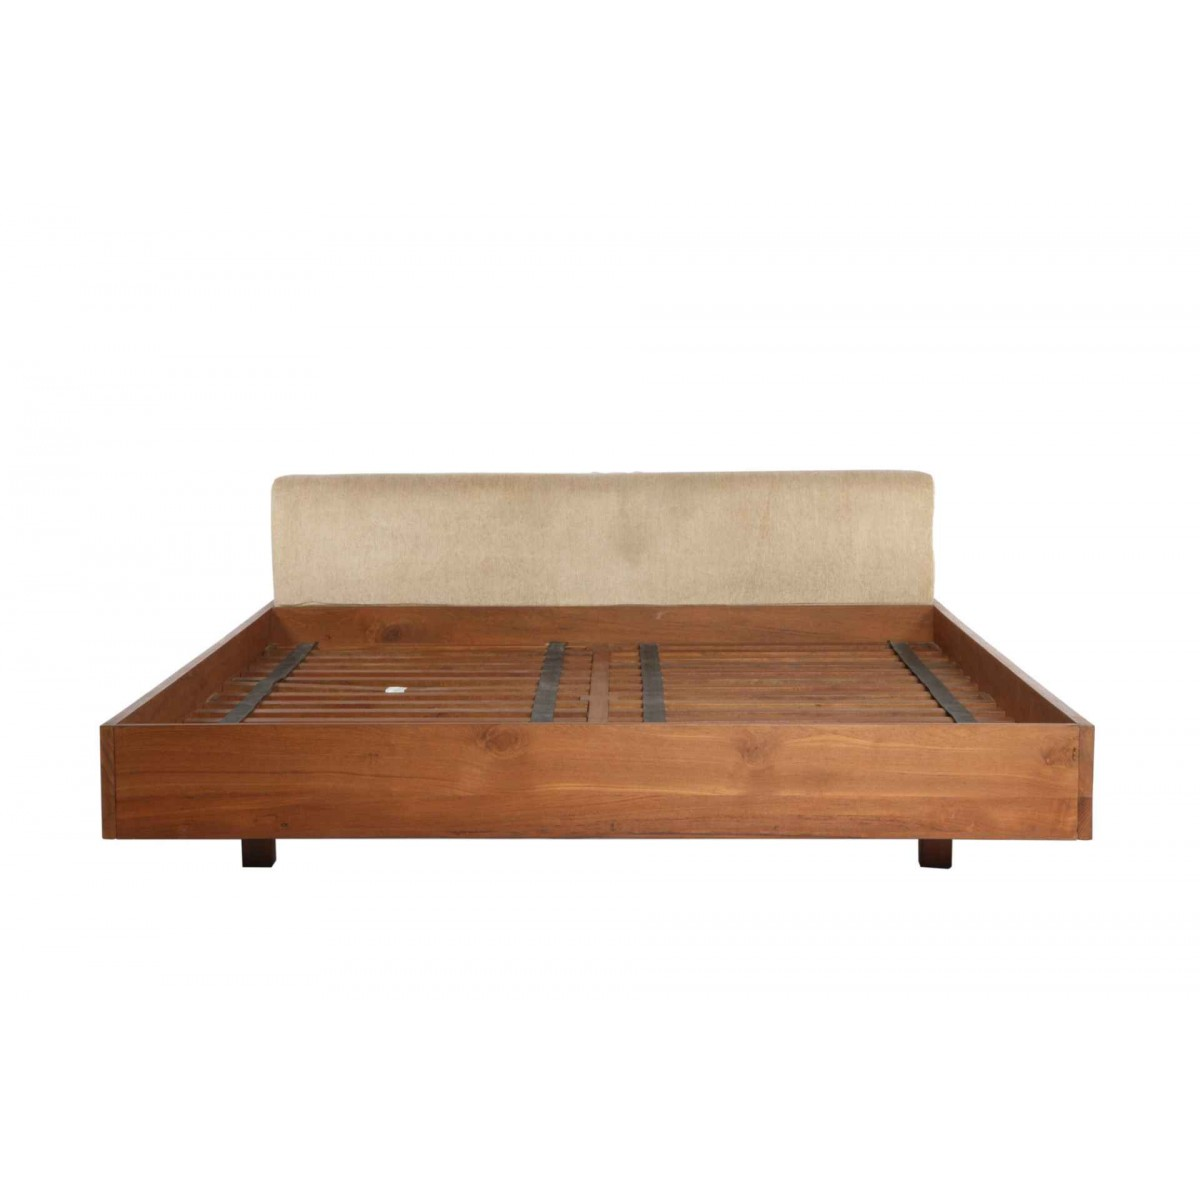 Coco King Size Teak Wood Bed Price In India Buy Coco King Size Teak Wood Bed Online Vyom Design